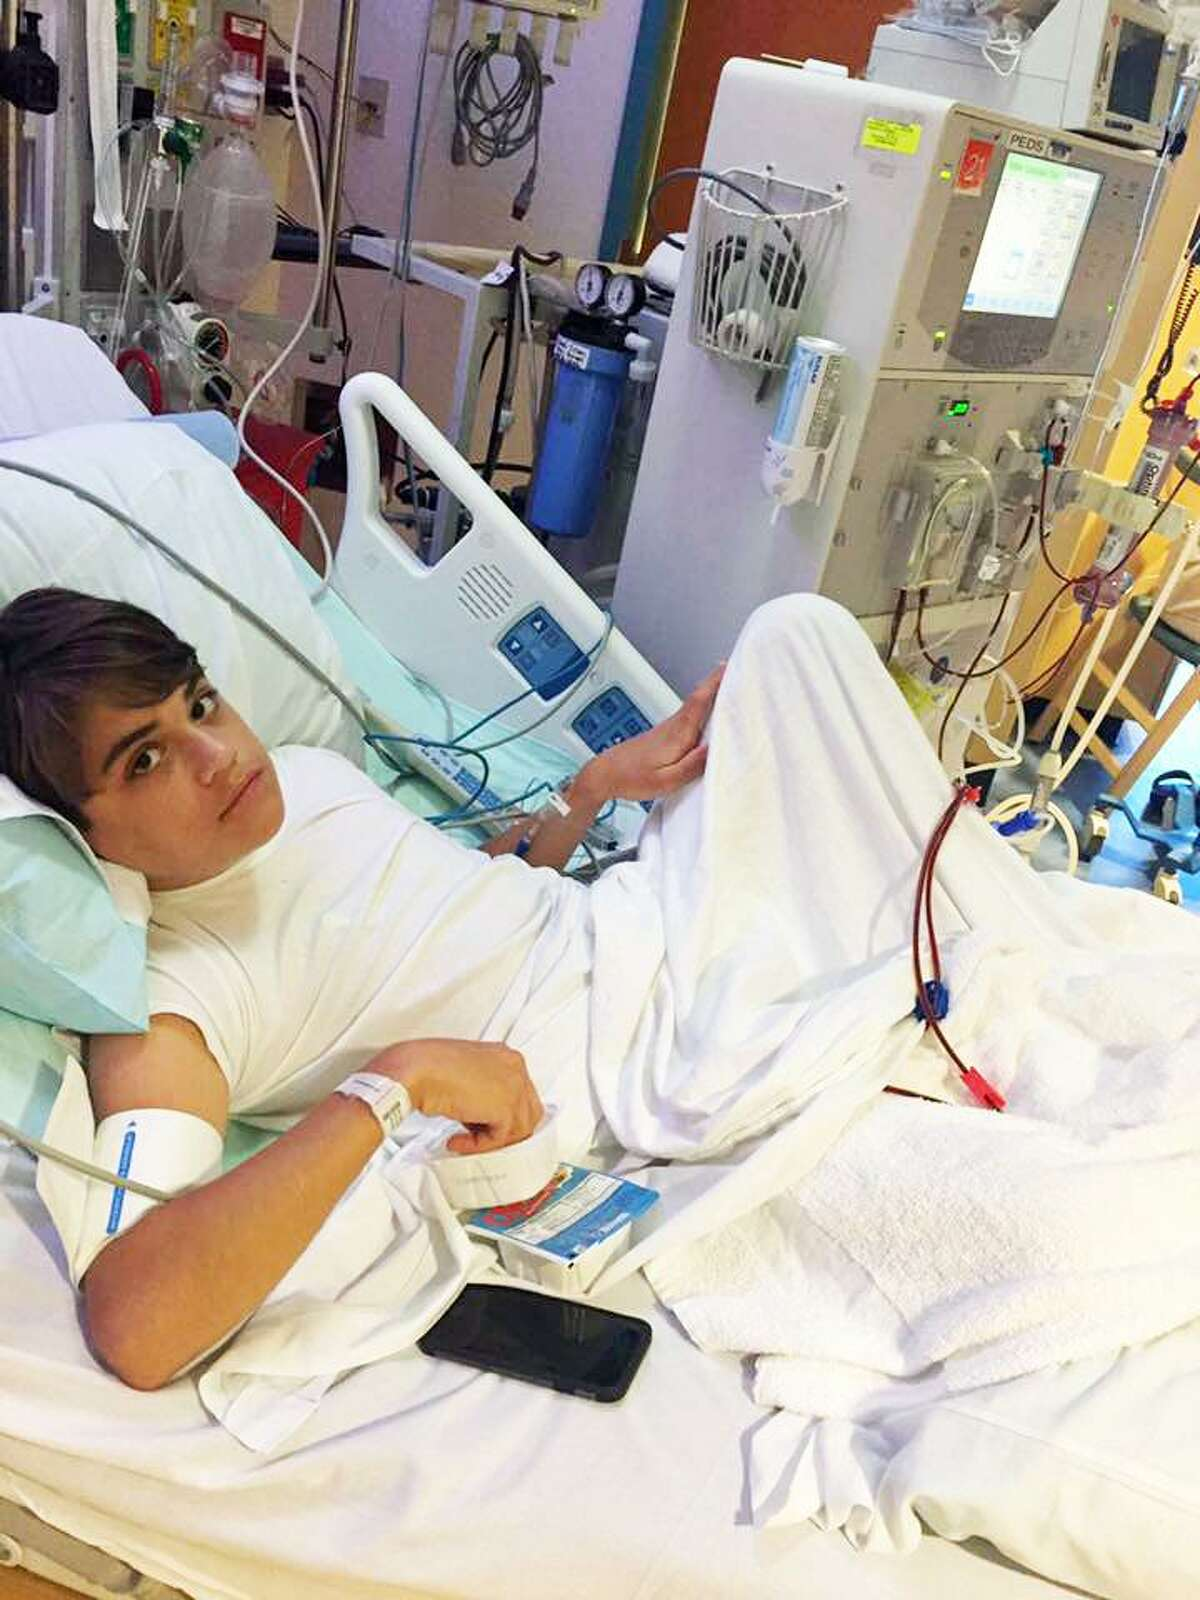 Joey Bavaro suffers from a rare kidney disease. Greenwich-based Needs Clearing House is hoping to raise money for his medical costs.